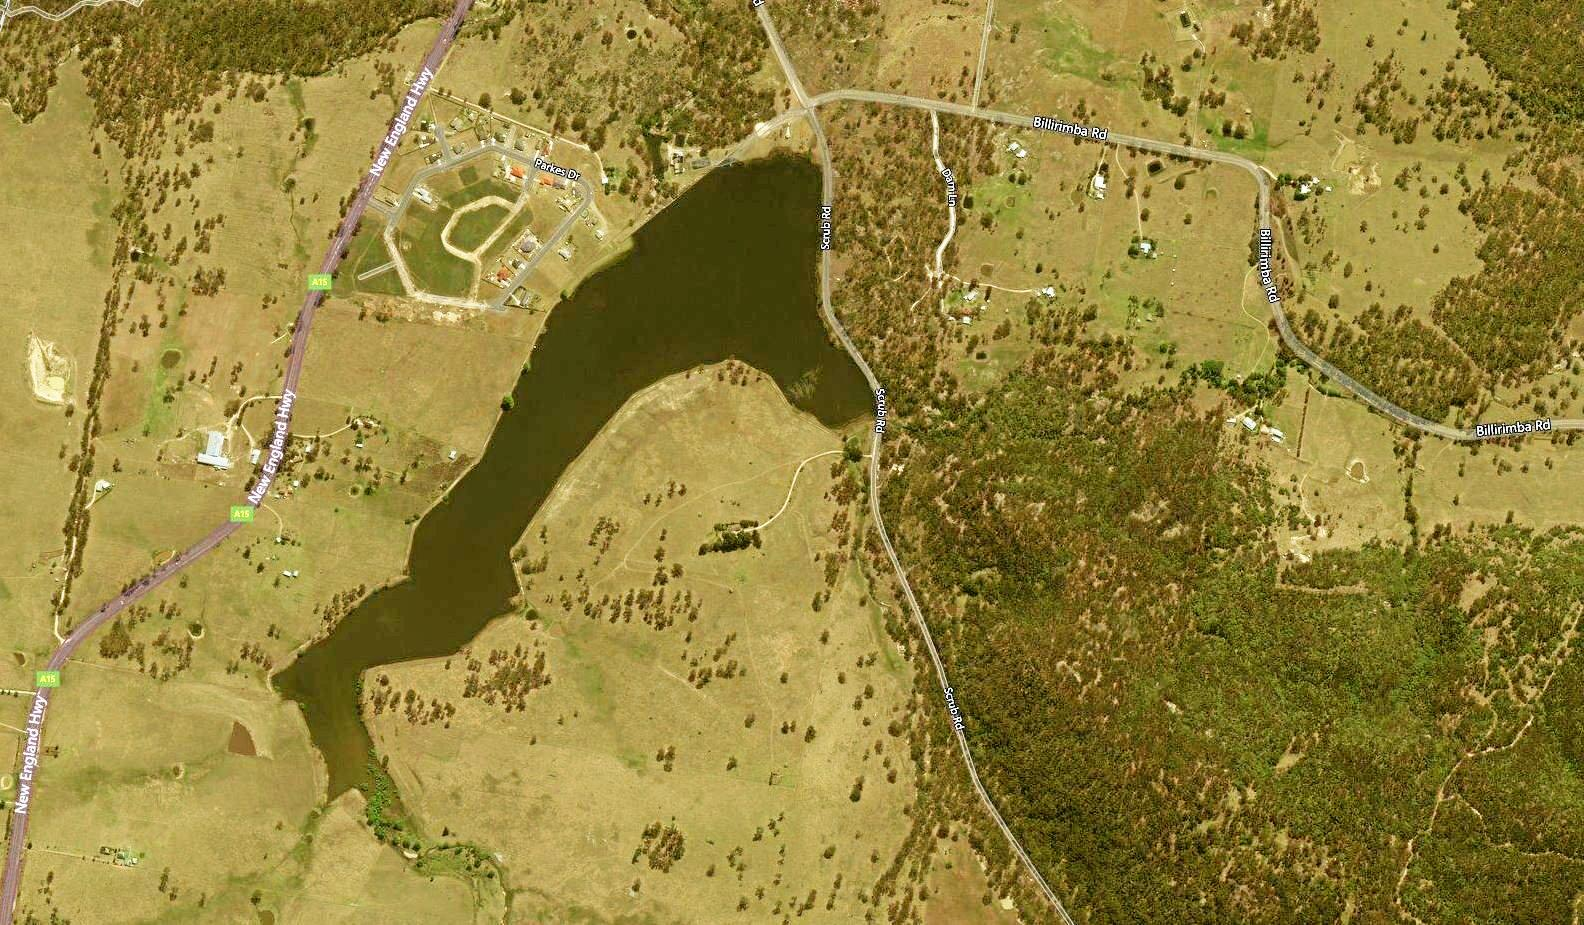 SHOCKING: GeoSciences Australia has captured this satellite image of Tenterfield Dam as it currently sits on August 28, 2019.